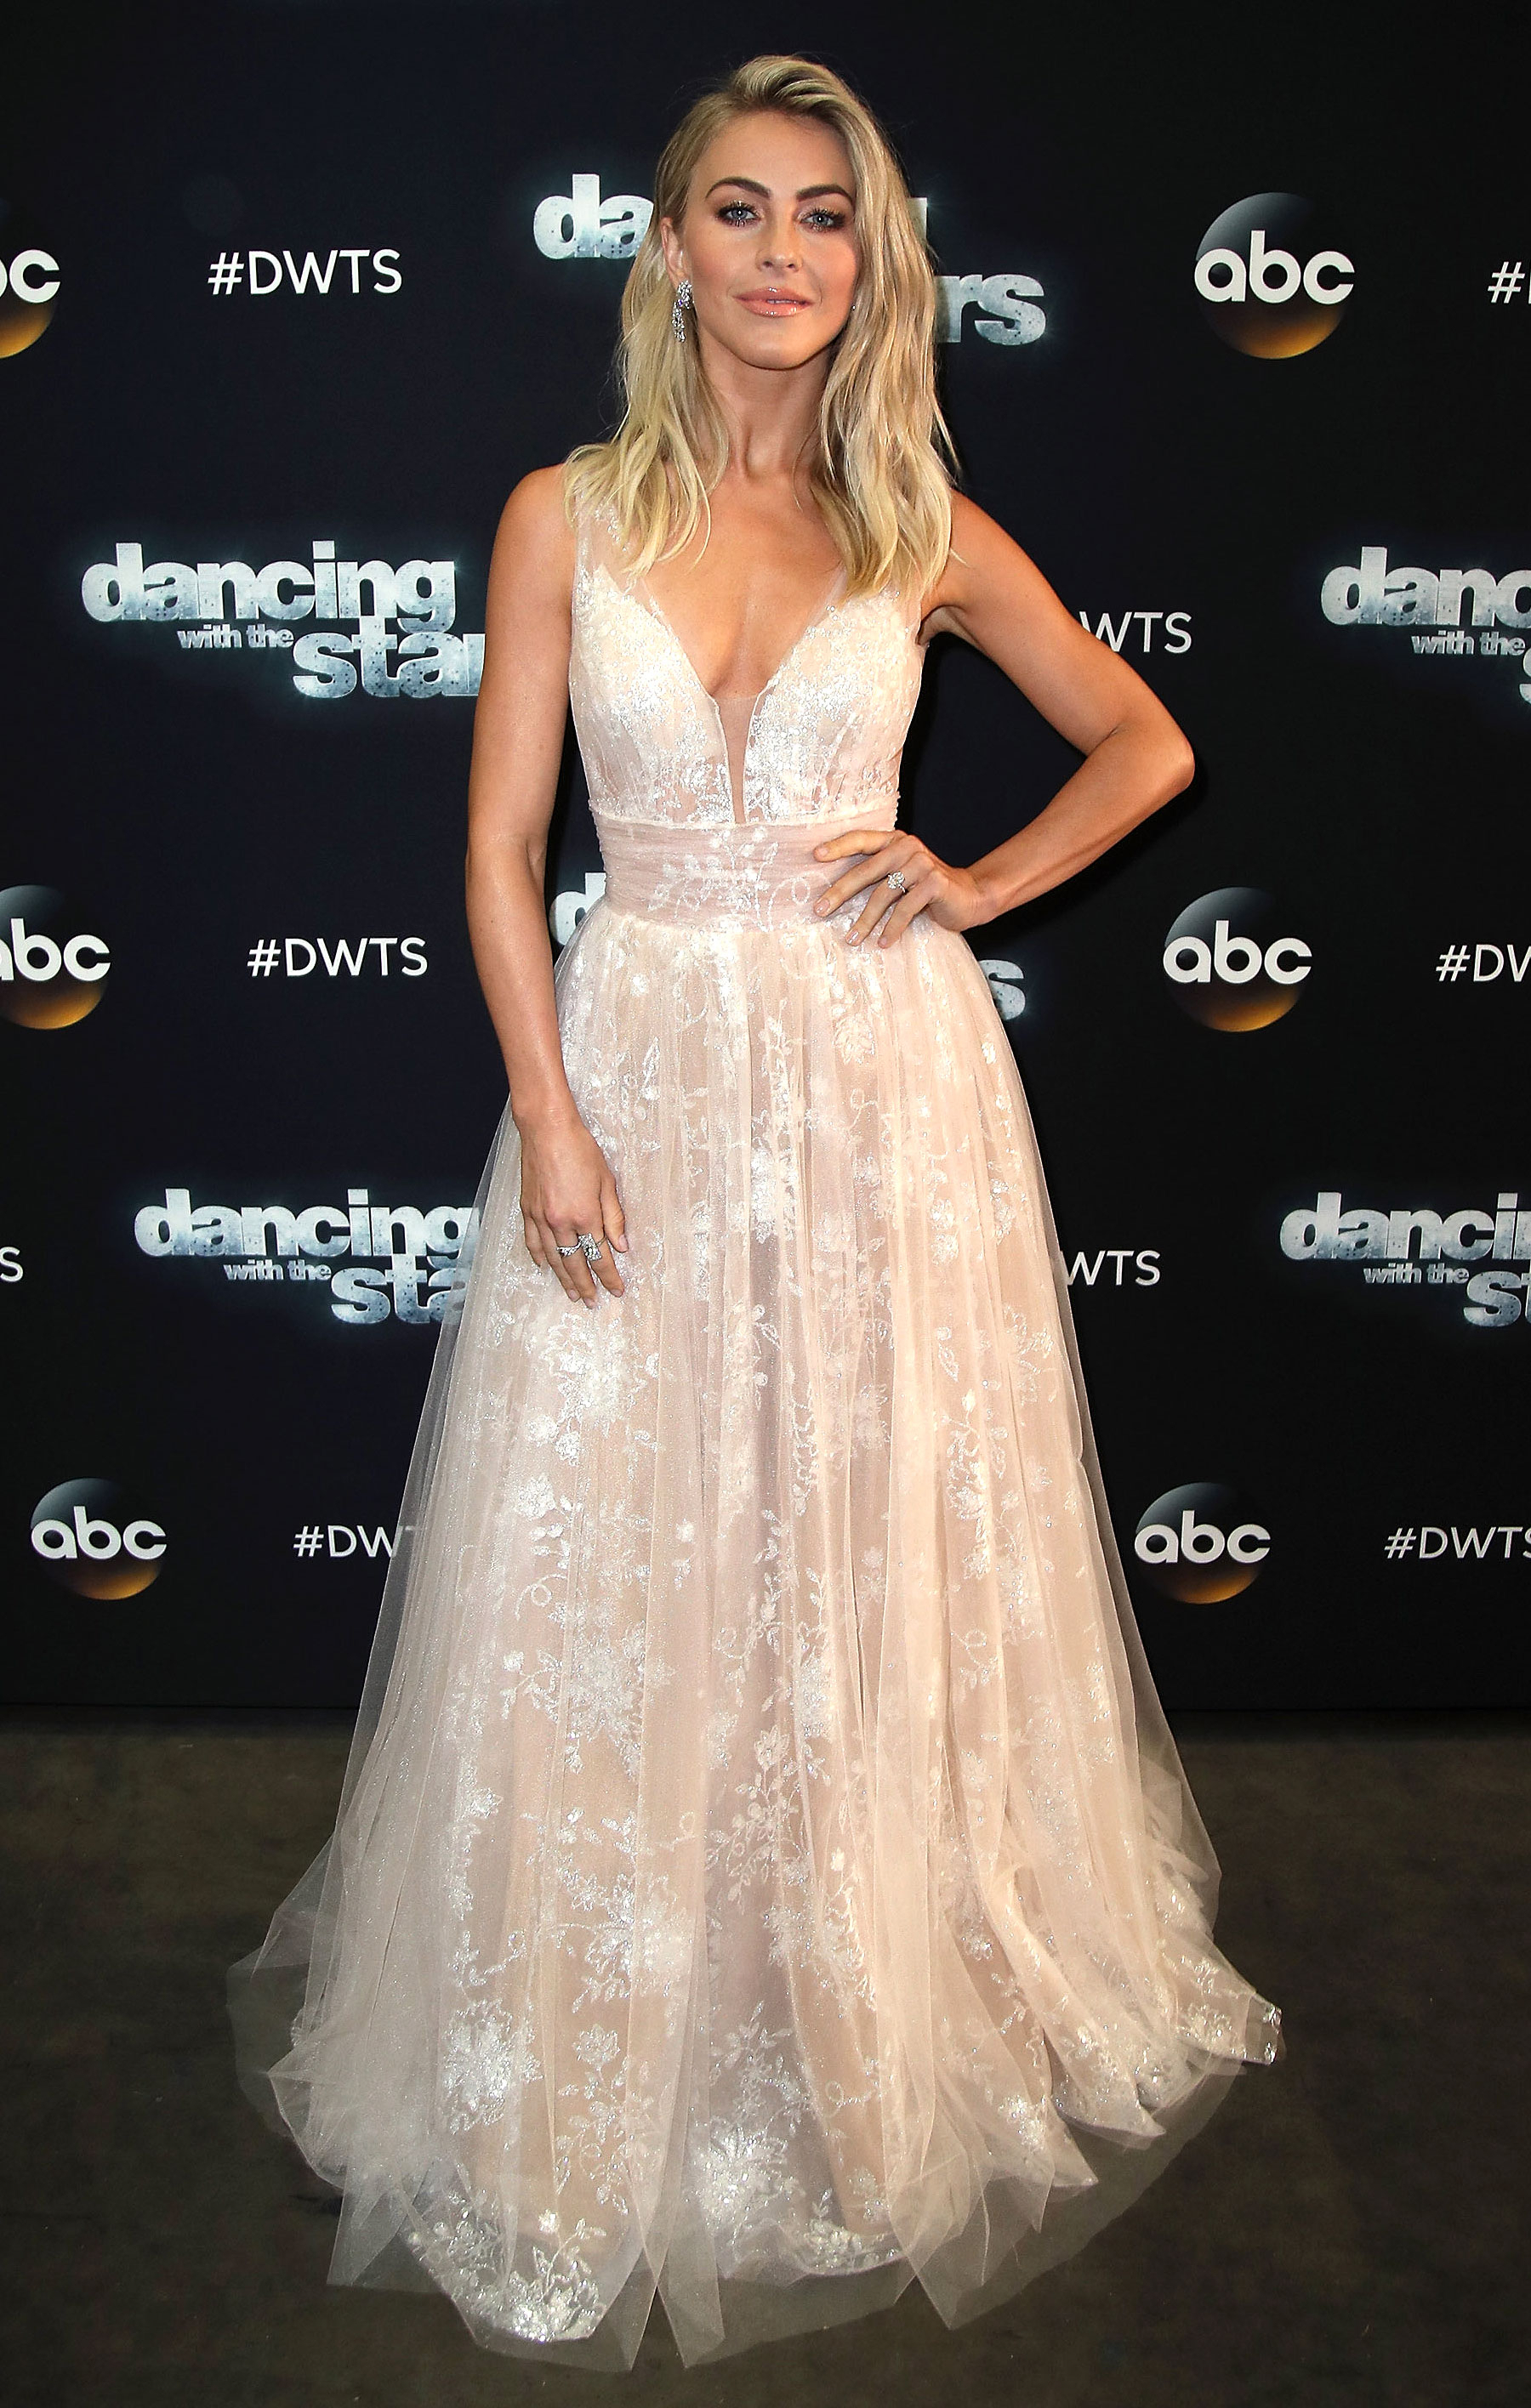 Julianne hough white dress on dancing with the stars